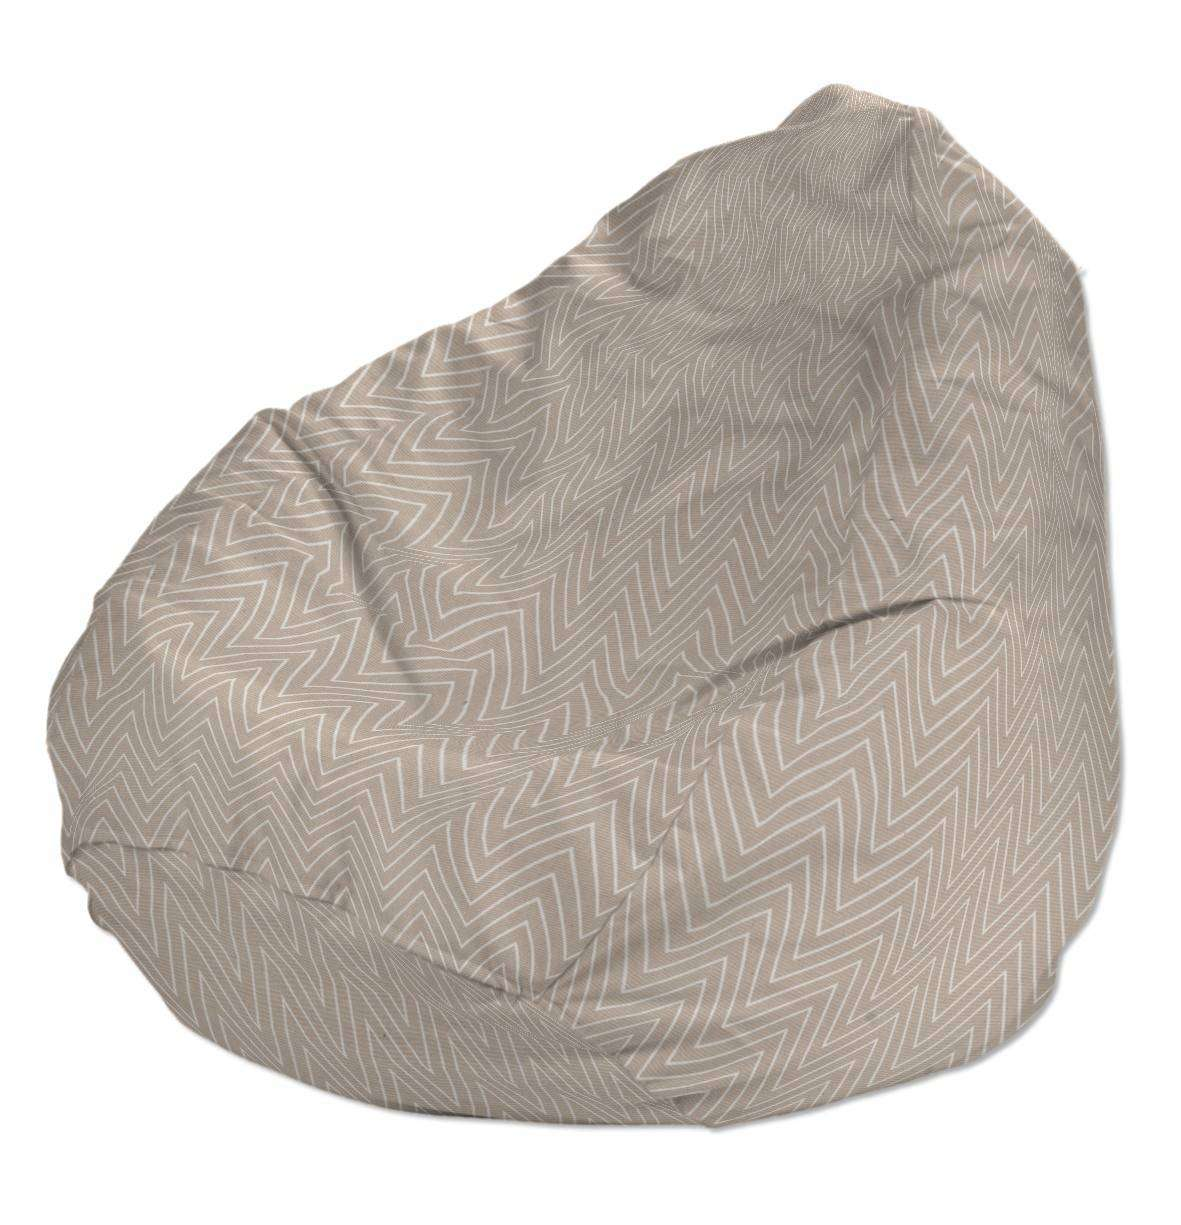 Beanbag Ø50 x 85 cm (20 x 33,5 inch) in collection Brooklyn, fabric: 137-91